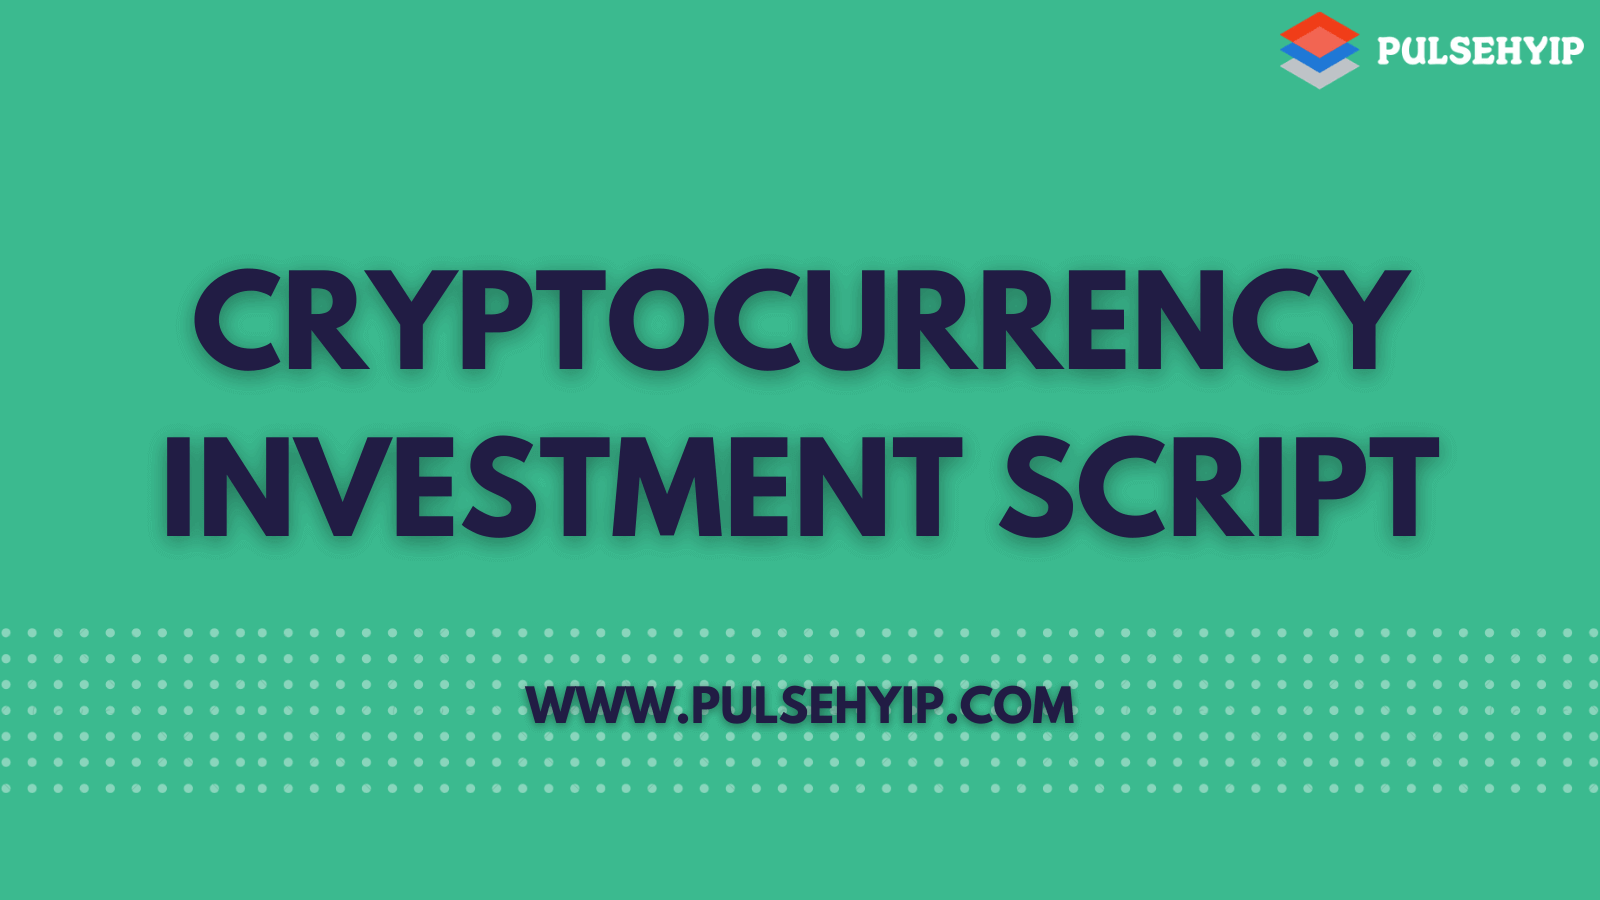 Cryptocurrencies Investment Script To Start Lucrative Investment Platform